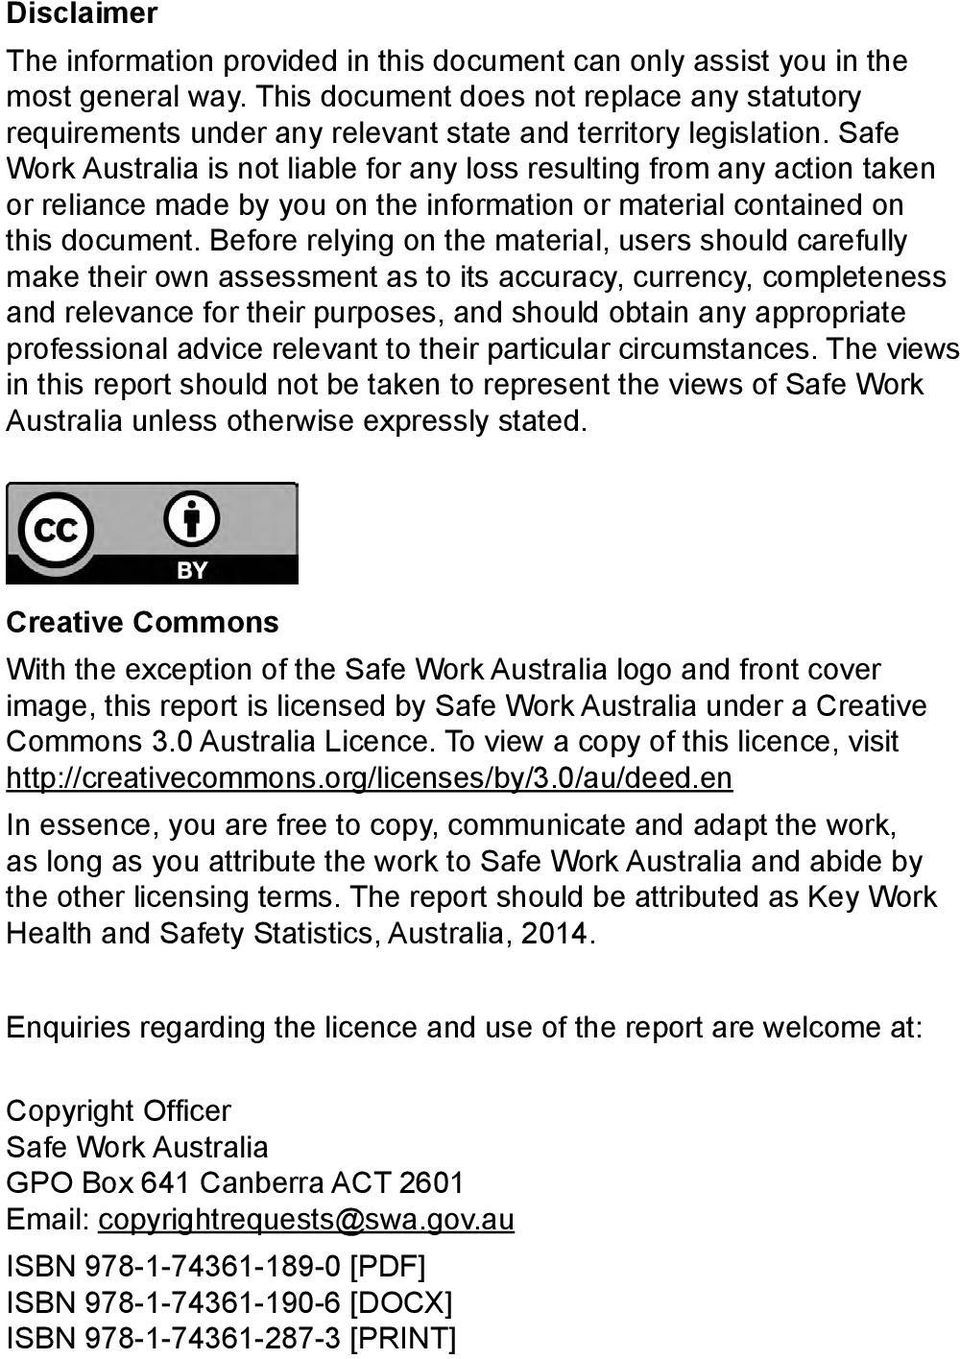 Safe Work Australia is not liable for any loss resulting from any action taken or reliance made by you on the information or material contained on this document.